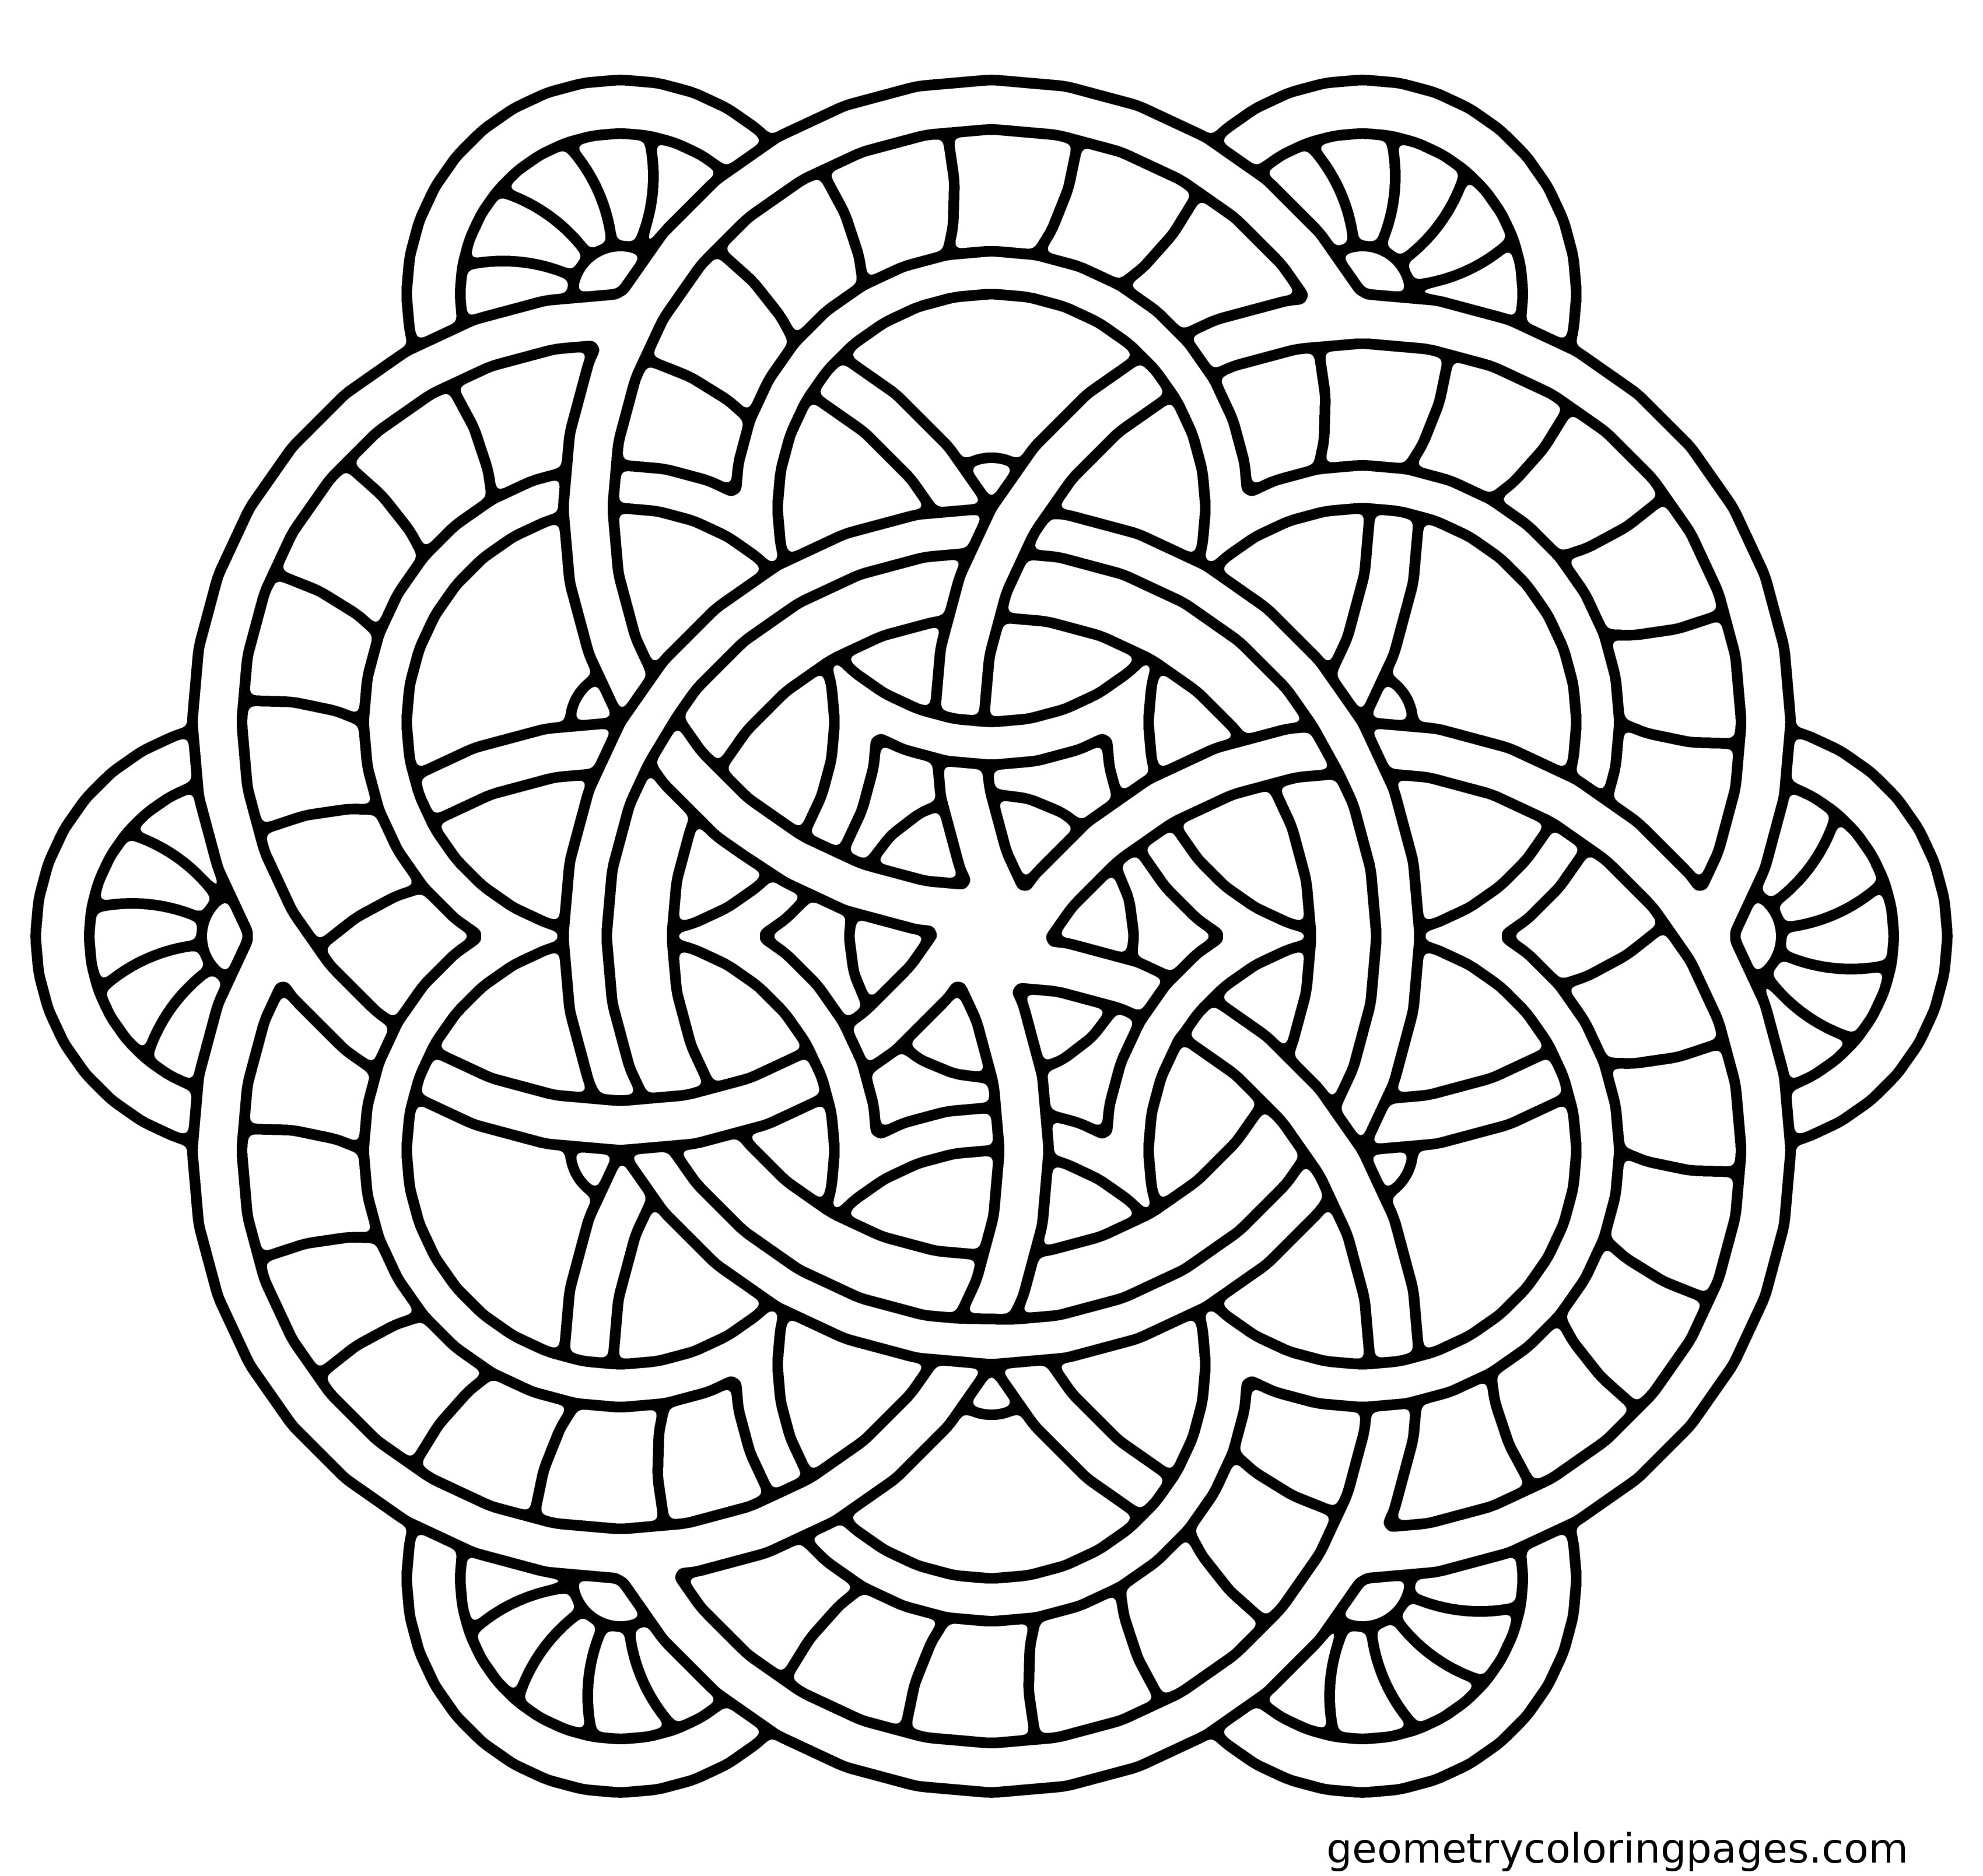 1000 free printable mandala coloring pages for adults